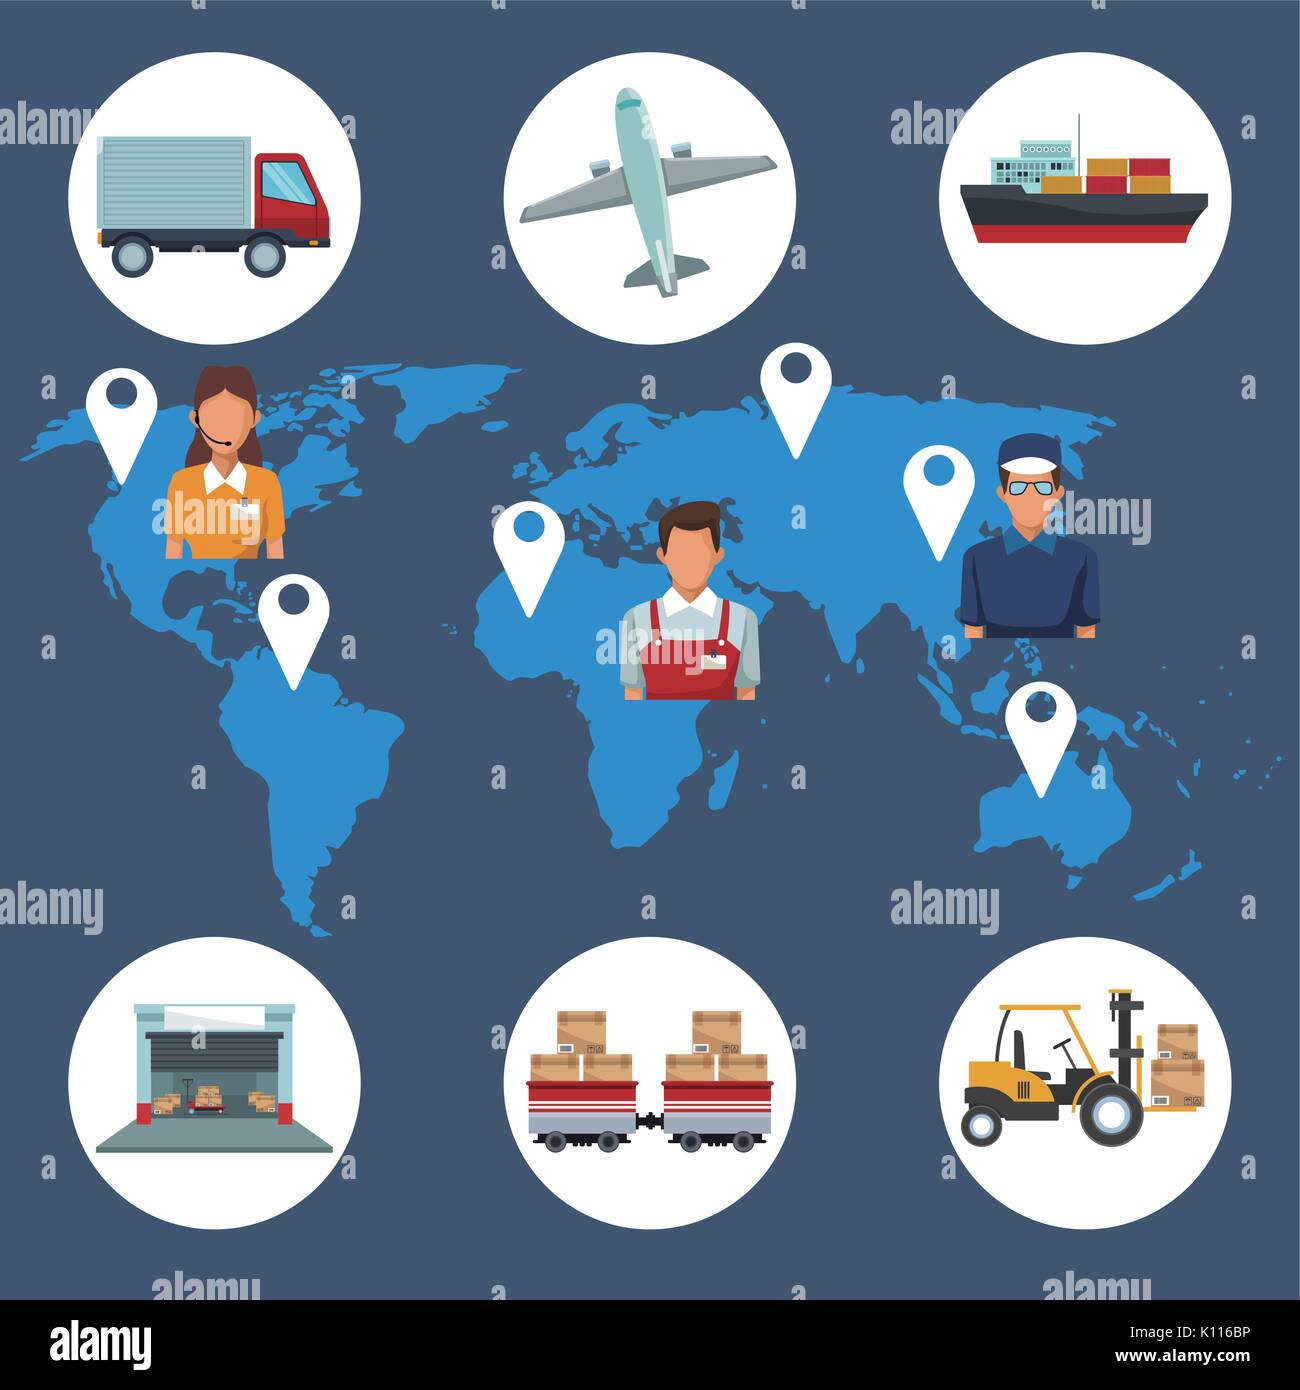 color silhouette world map background with icons storage logistics and people location - Stock Image